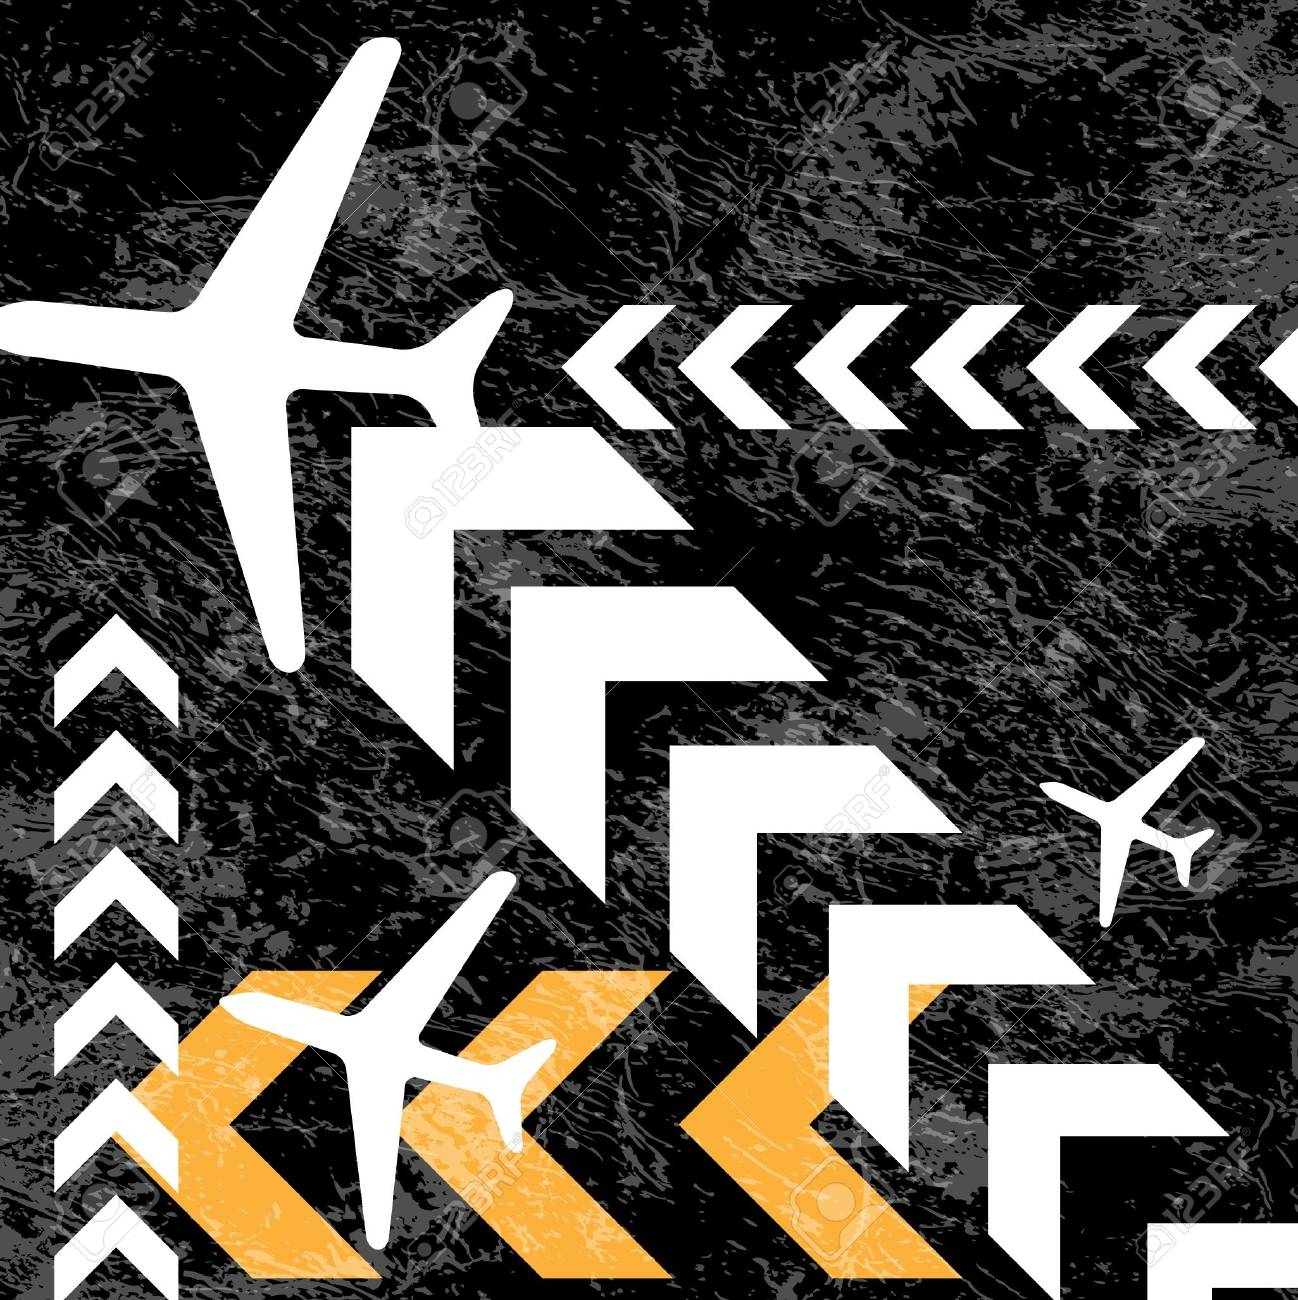 Vector Illustration of Airplane Routes Stock Vector - 12658655